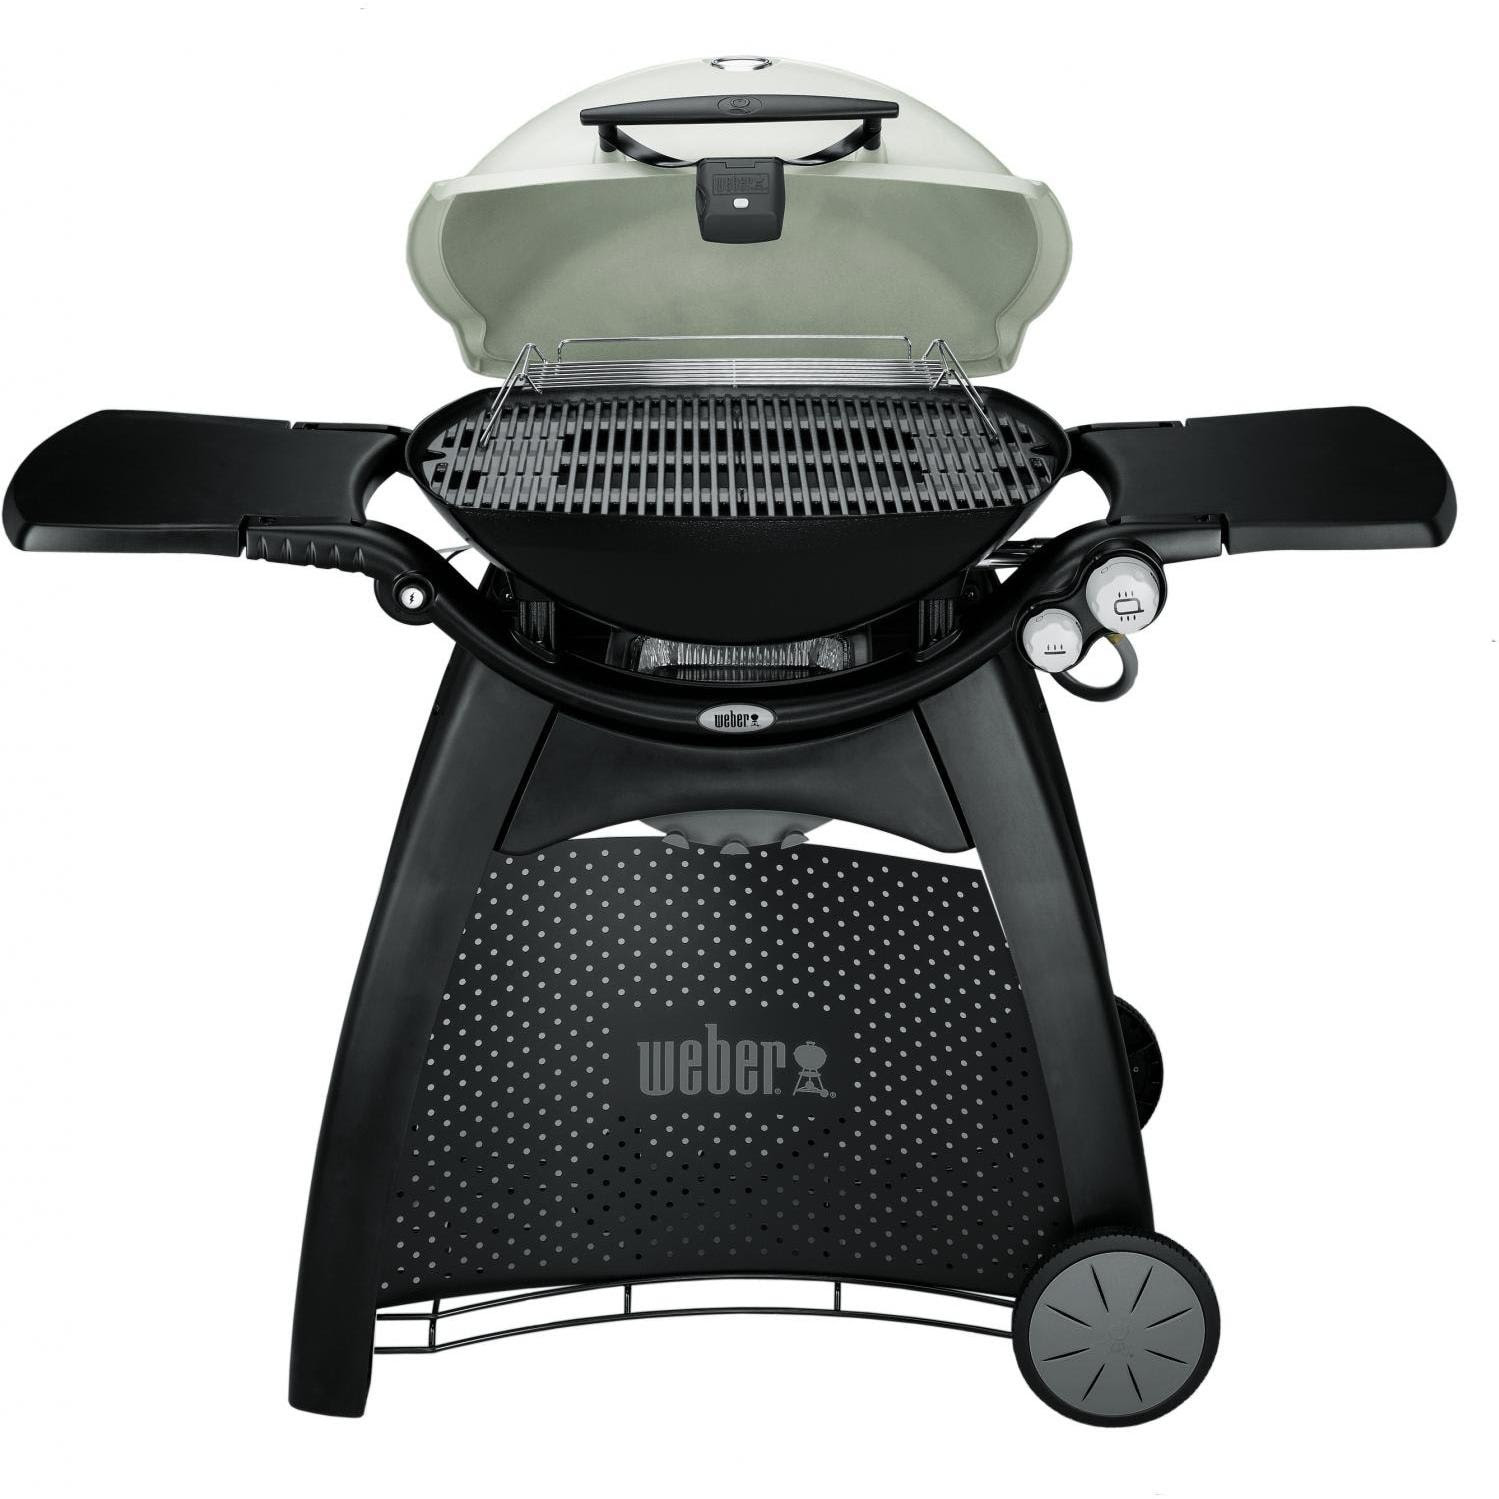 Weber grill restaurant coupons discounts Bed bath and beyond in